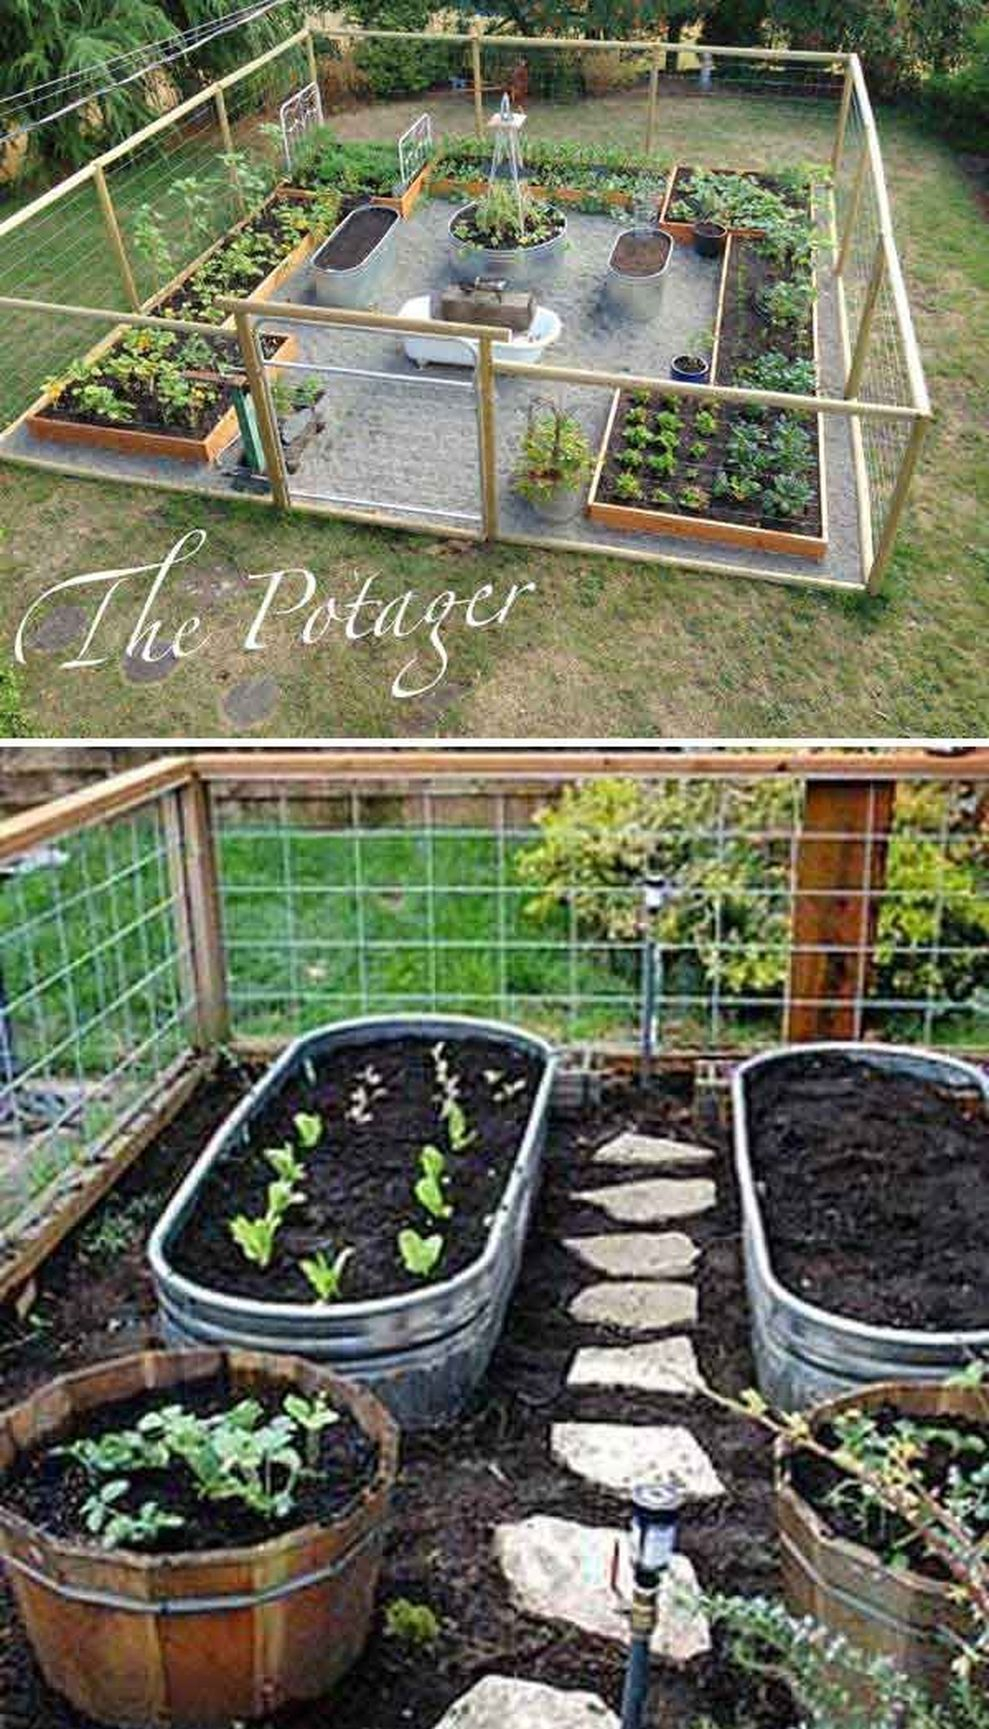 62 Affordable Backyard Vegetable Garden Designs Ideas The with Backyard Vegetable Garden Ideas